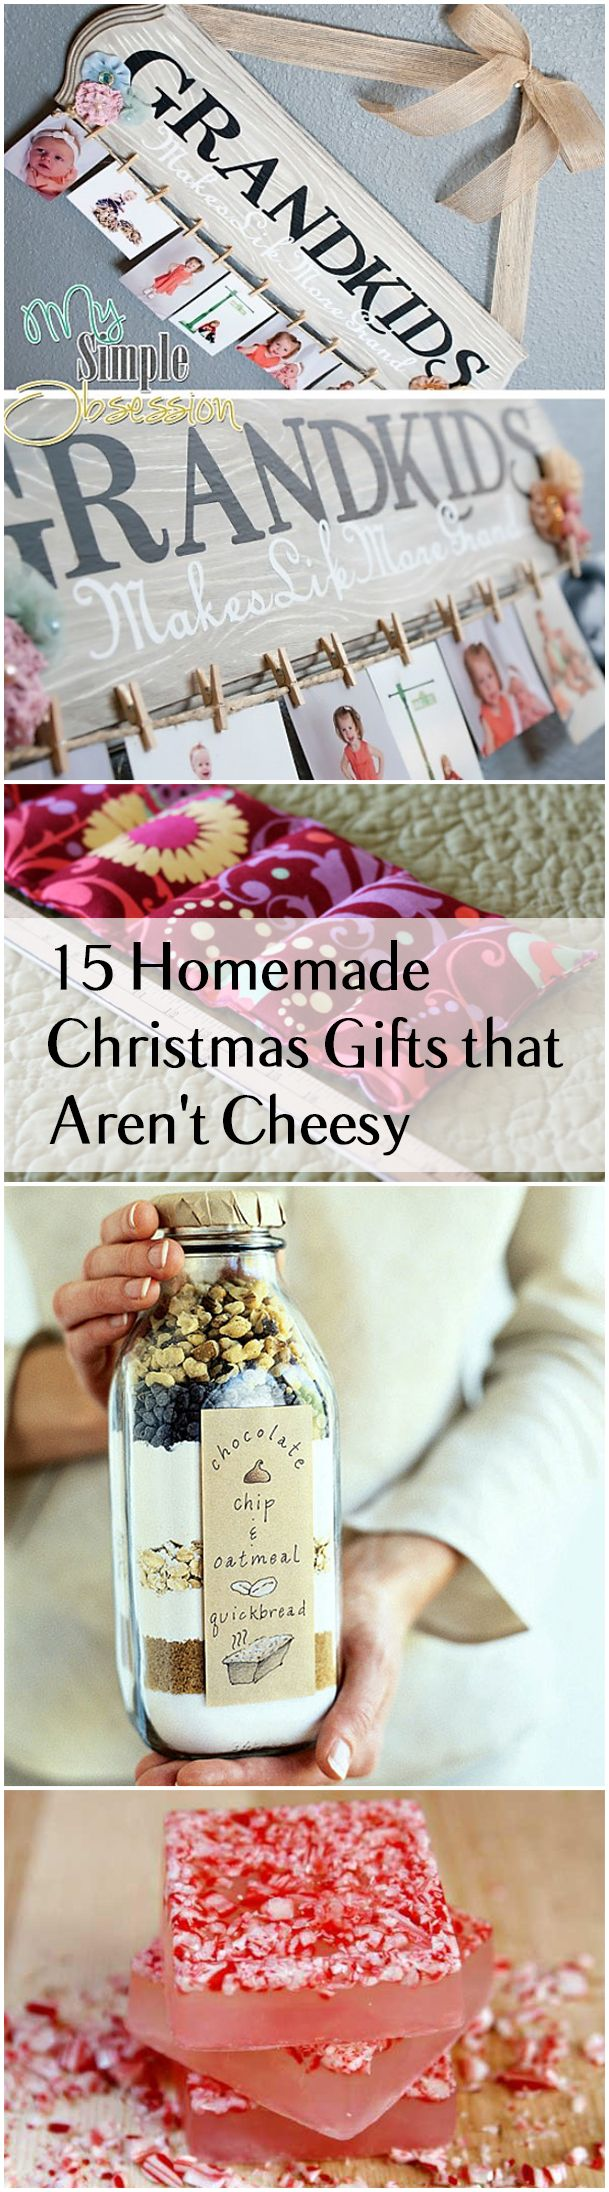 15 Homemade Christmas Gifts That Aren't Cheesy Homemade